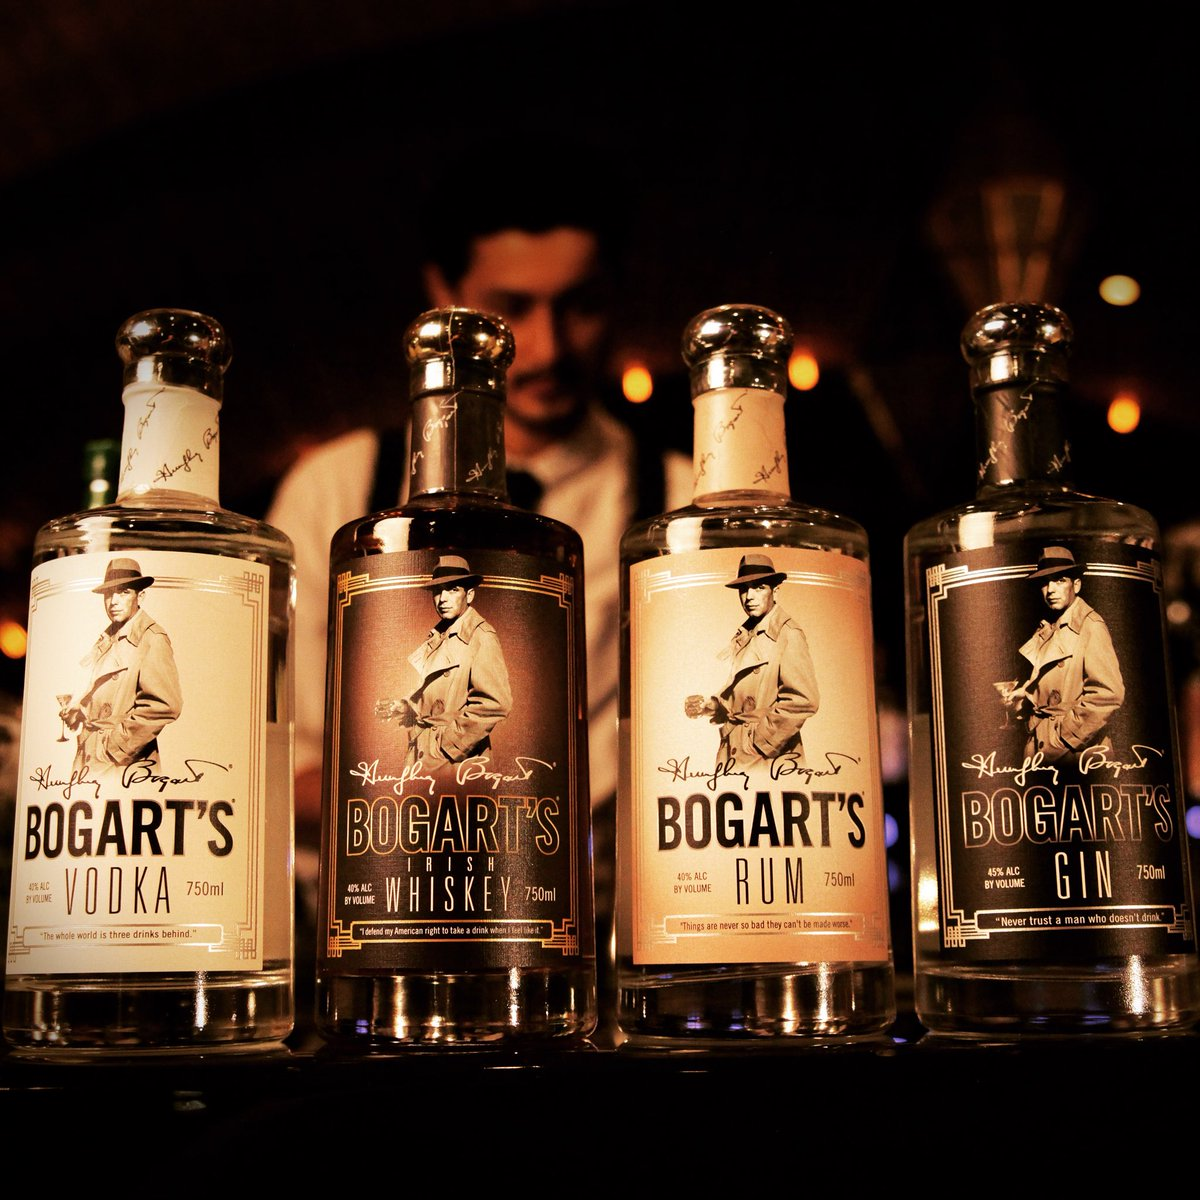 You can order our award-winning @BogartSpirits collection online at liquorama.net. #FridayFeeling #friyay #spirits #cocktails